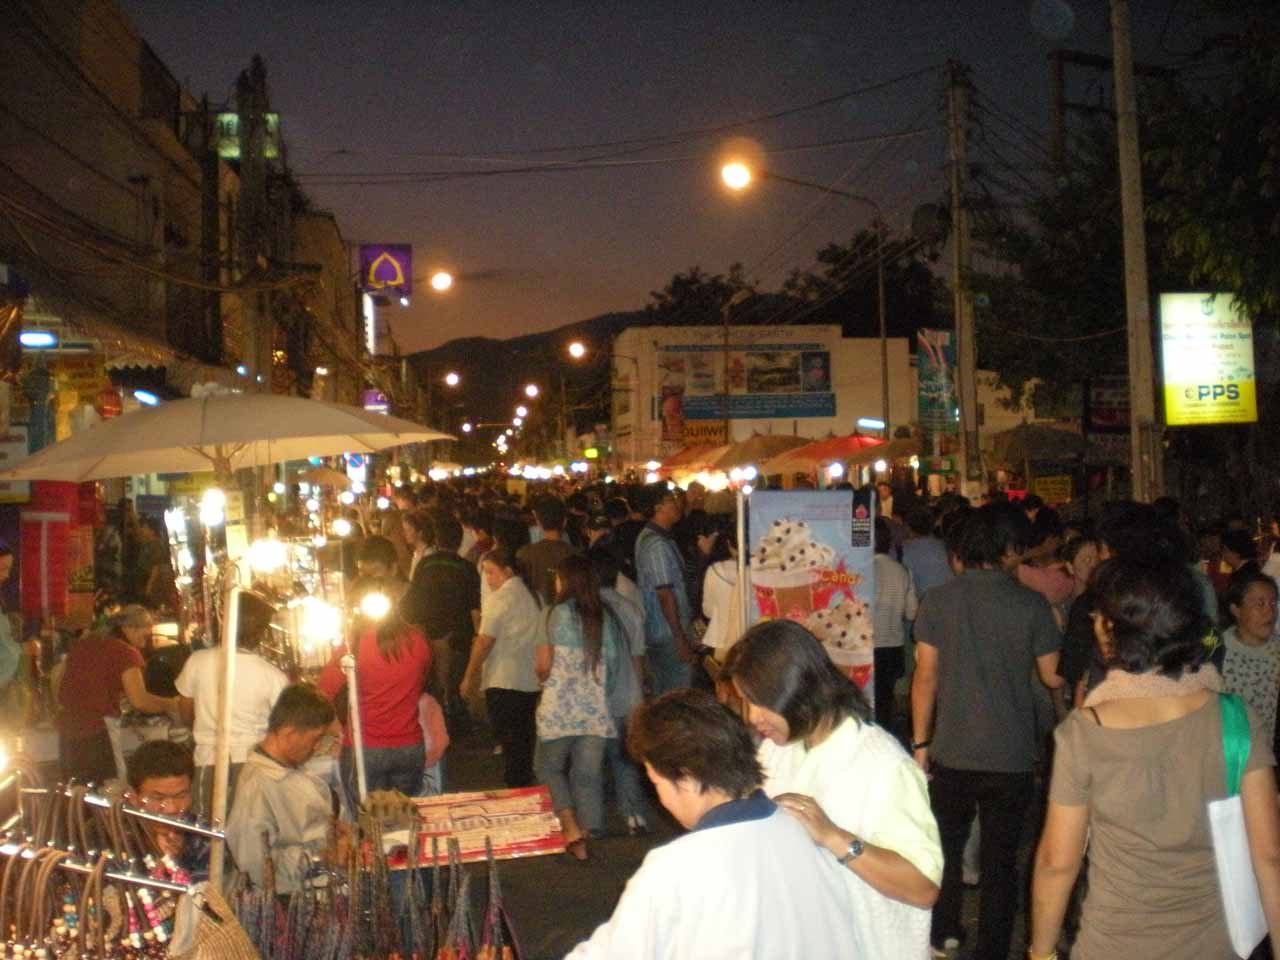 We had based ourselves in Chiang Mai for the part of our Northern Thailand tour that included Doi Inthanon, and that let us experience night markets like the Sunday Walking Street